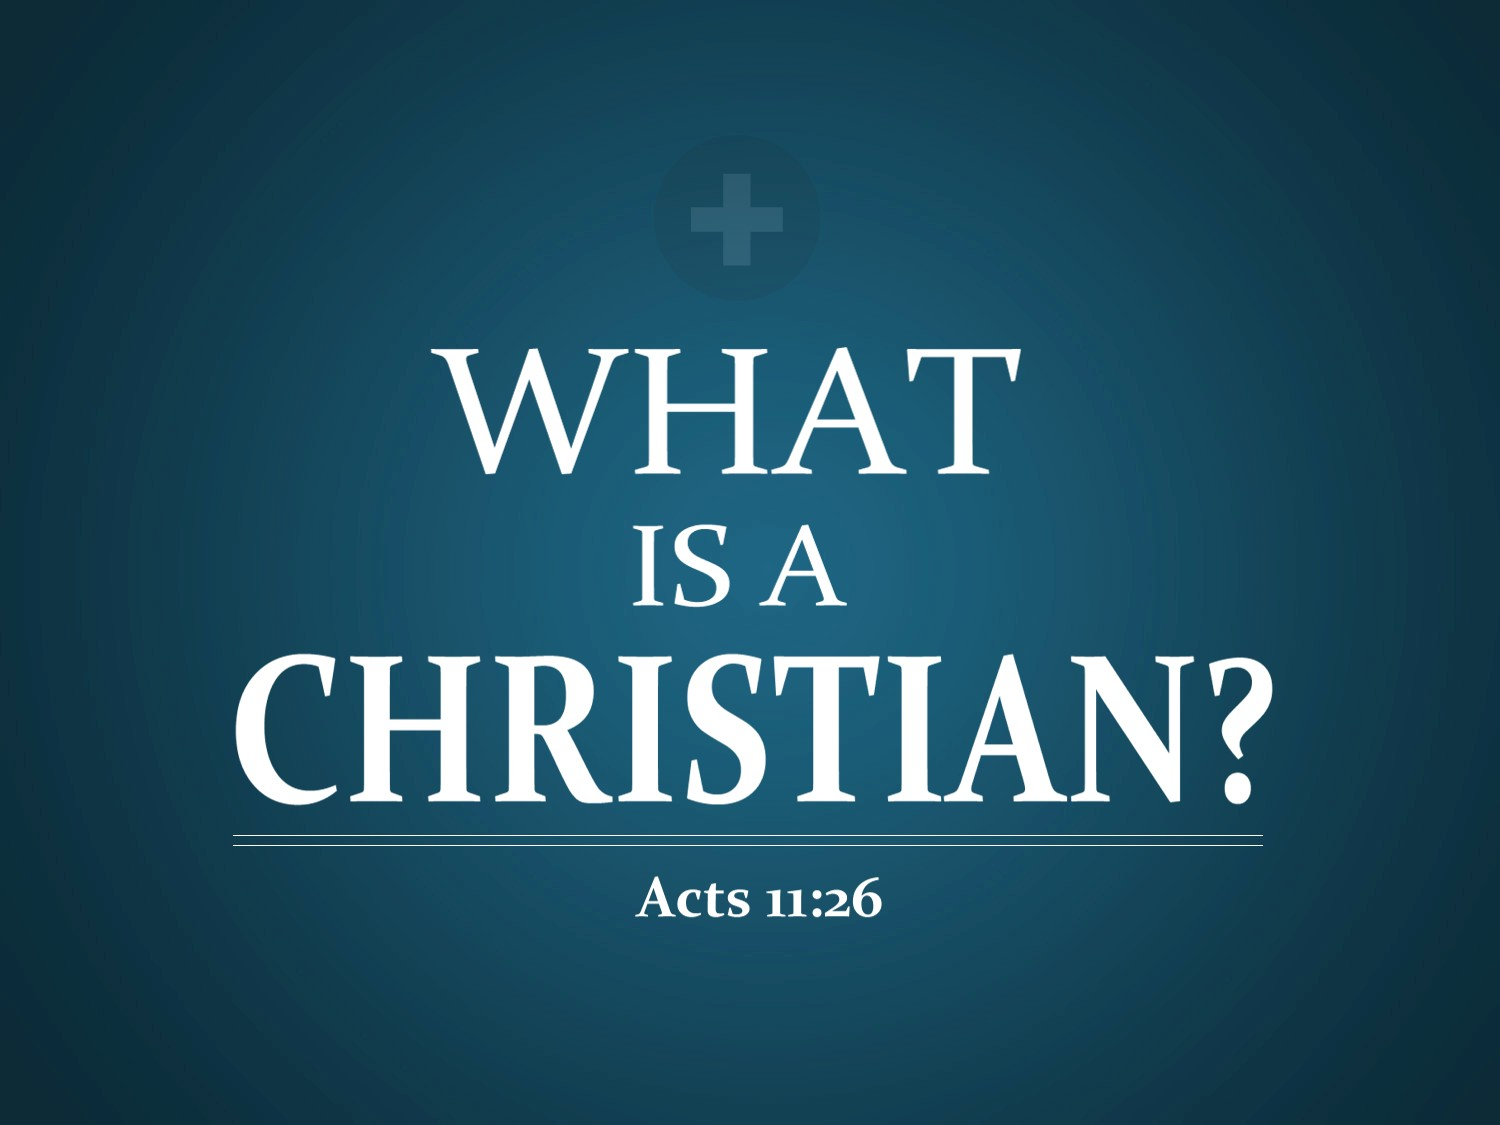 christian wallpapers what